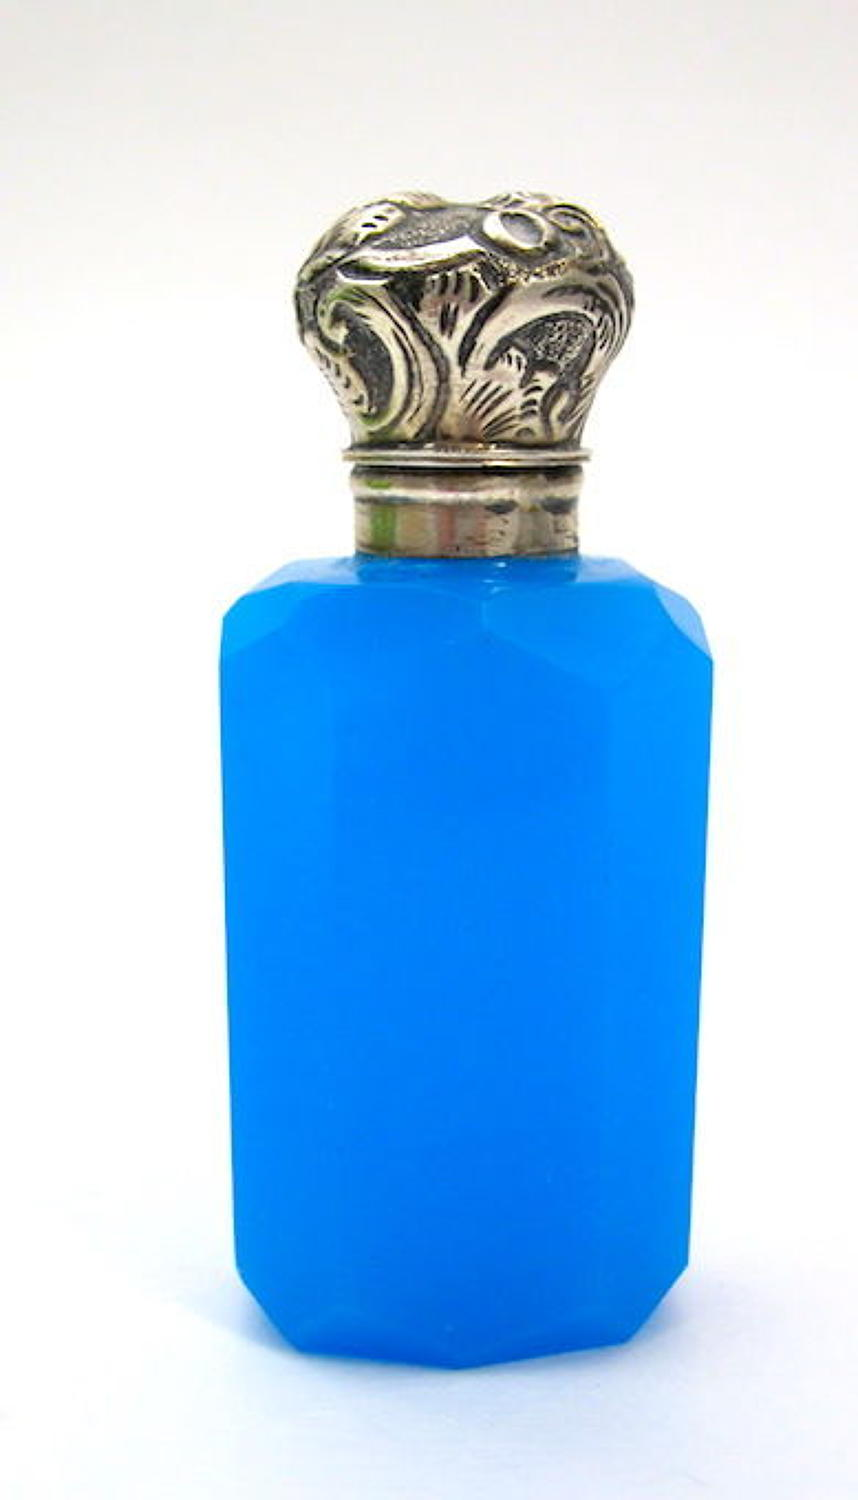 Antique Blue Opaline Glass Perfume Bottle